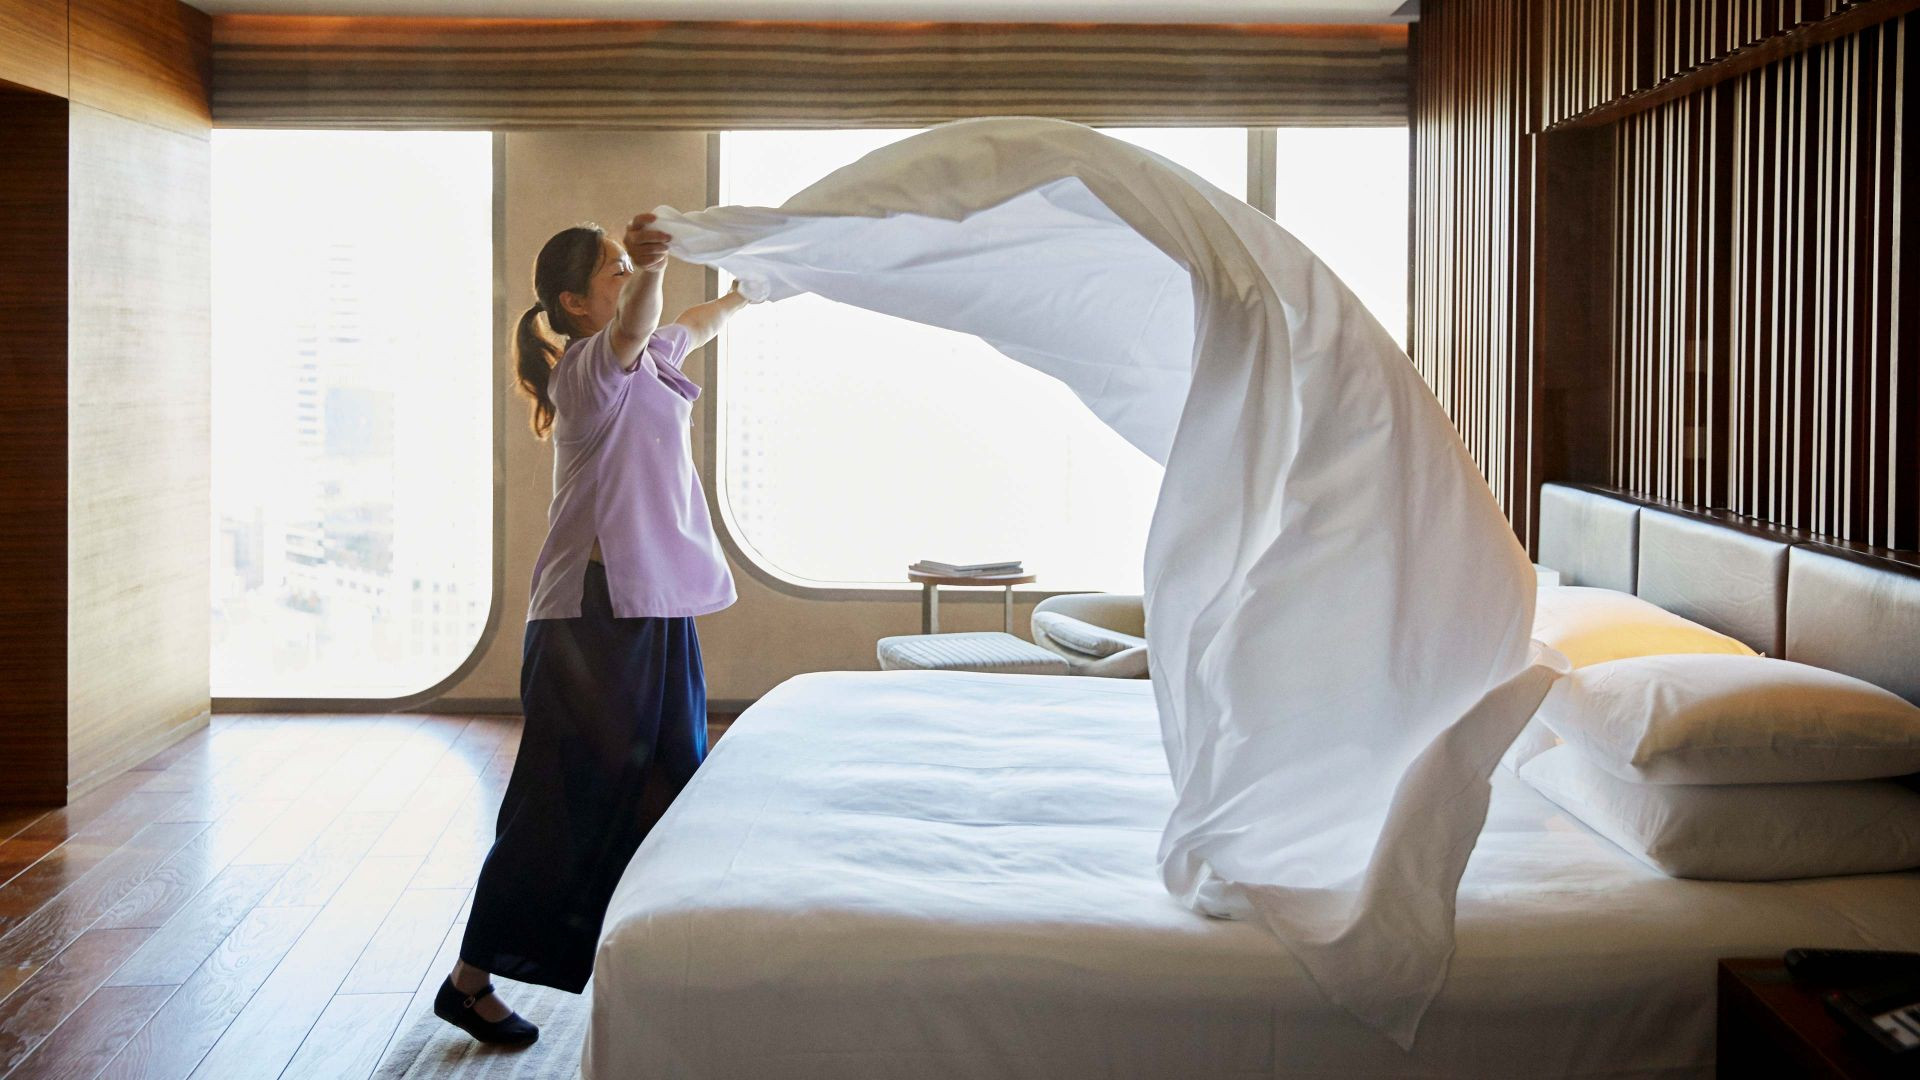 A hotel worker billows out a fresh sheet over a guest bed.